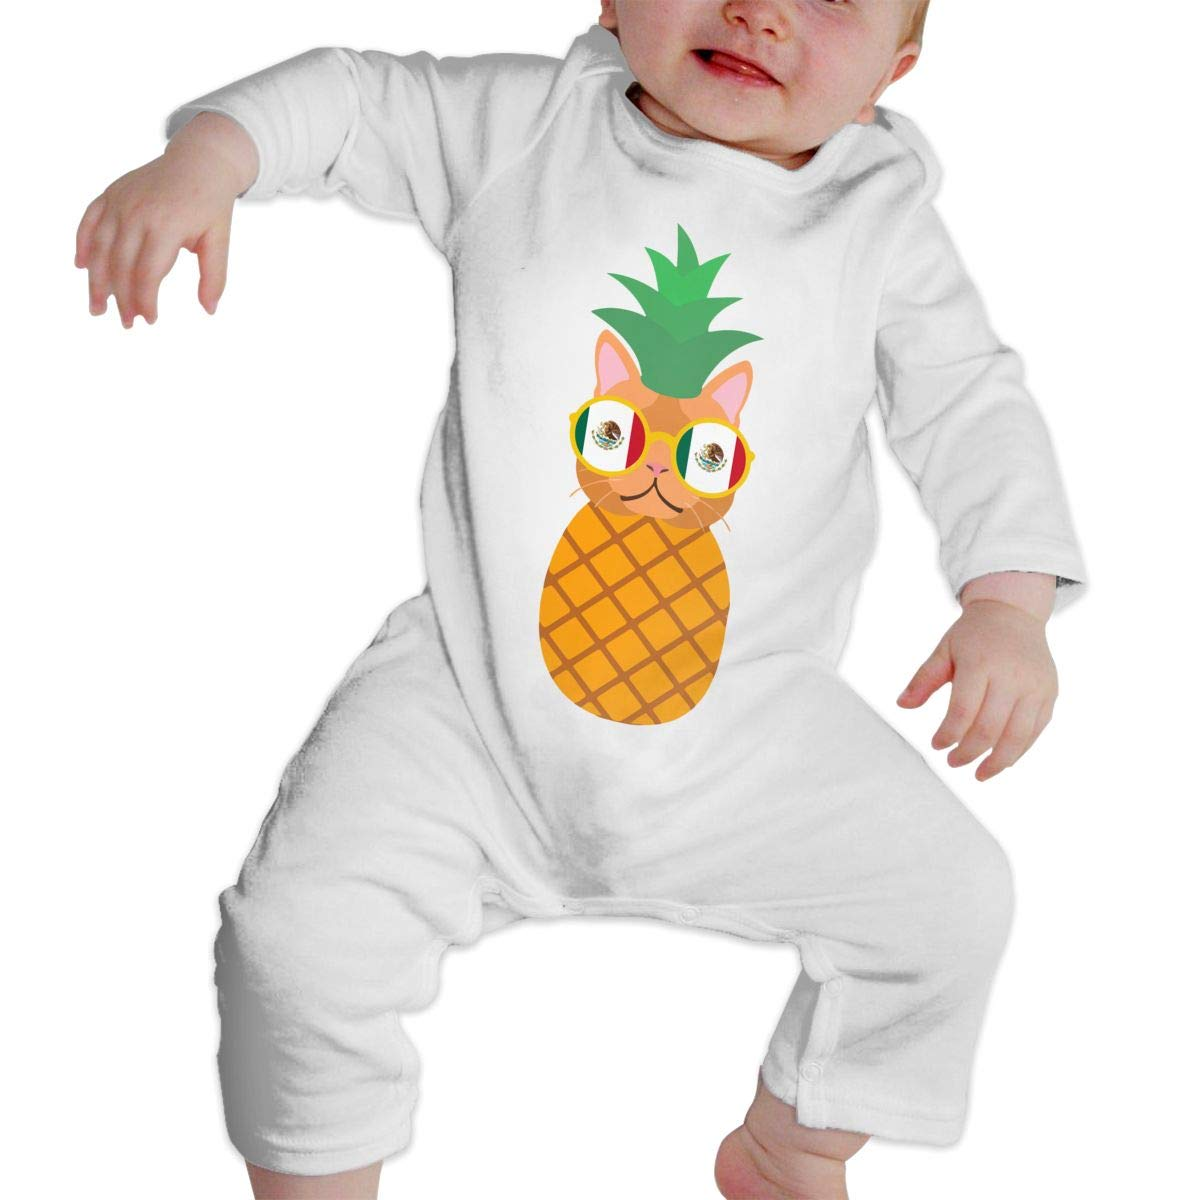 Mexican Pineapple Cat Infant Baby Boy Girl Organic Cotton Romper Pajama Clothes